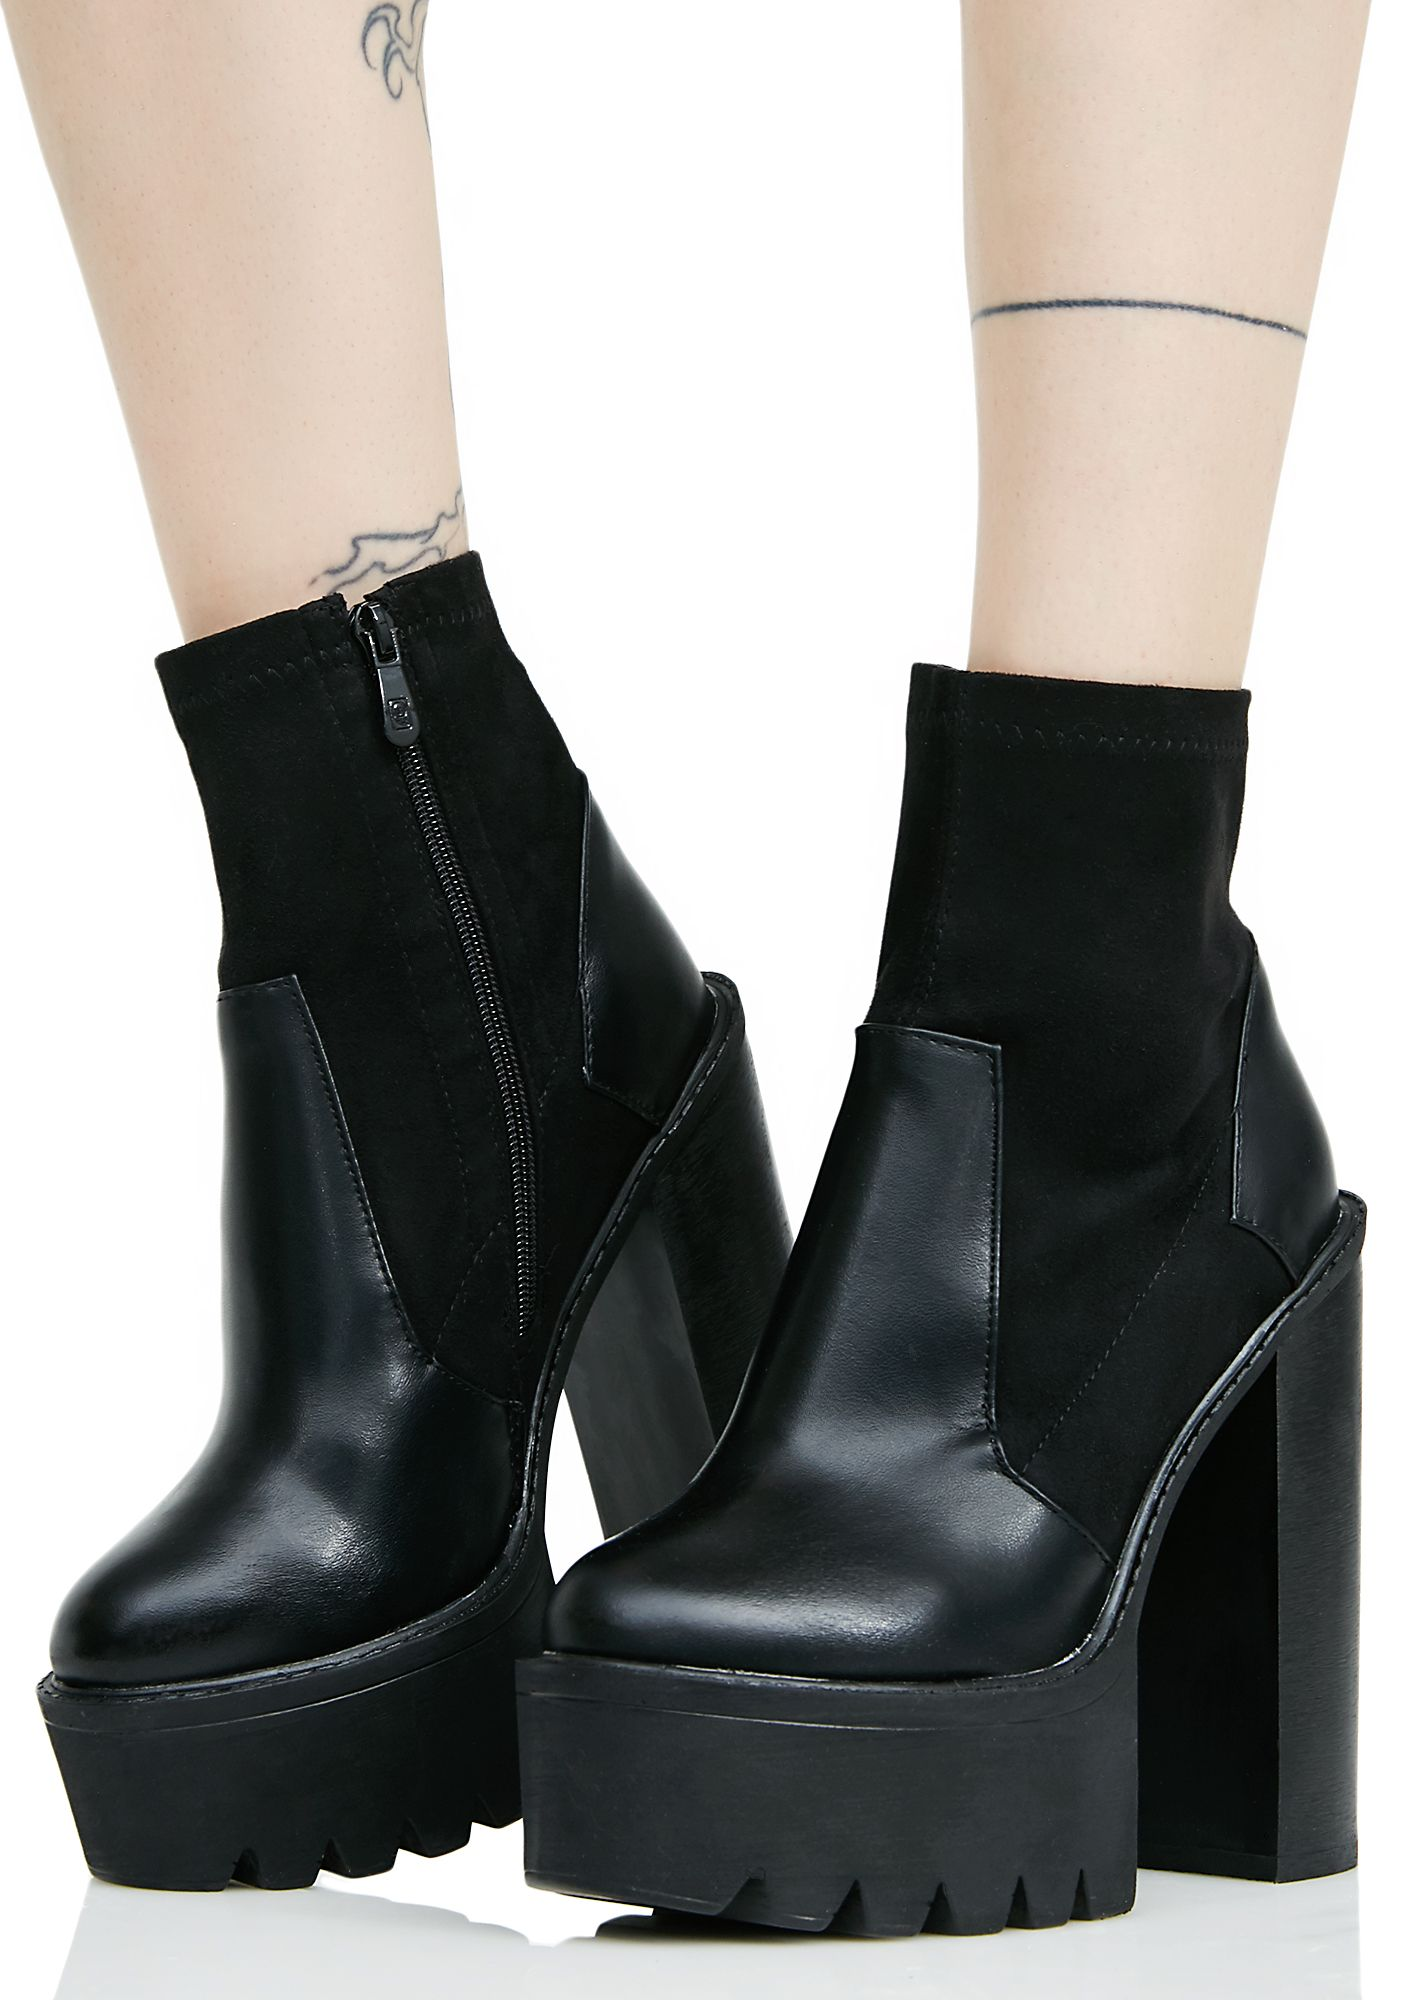 7b3f965359 Public Desire Karmen Cleated-Sole Platform Ankle Boots #90s #grunge #fashion